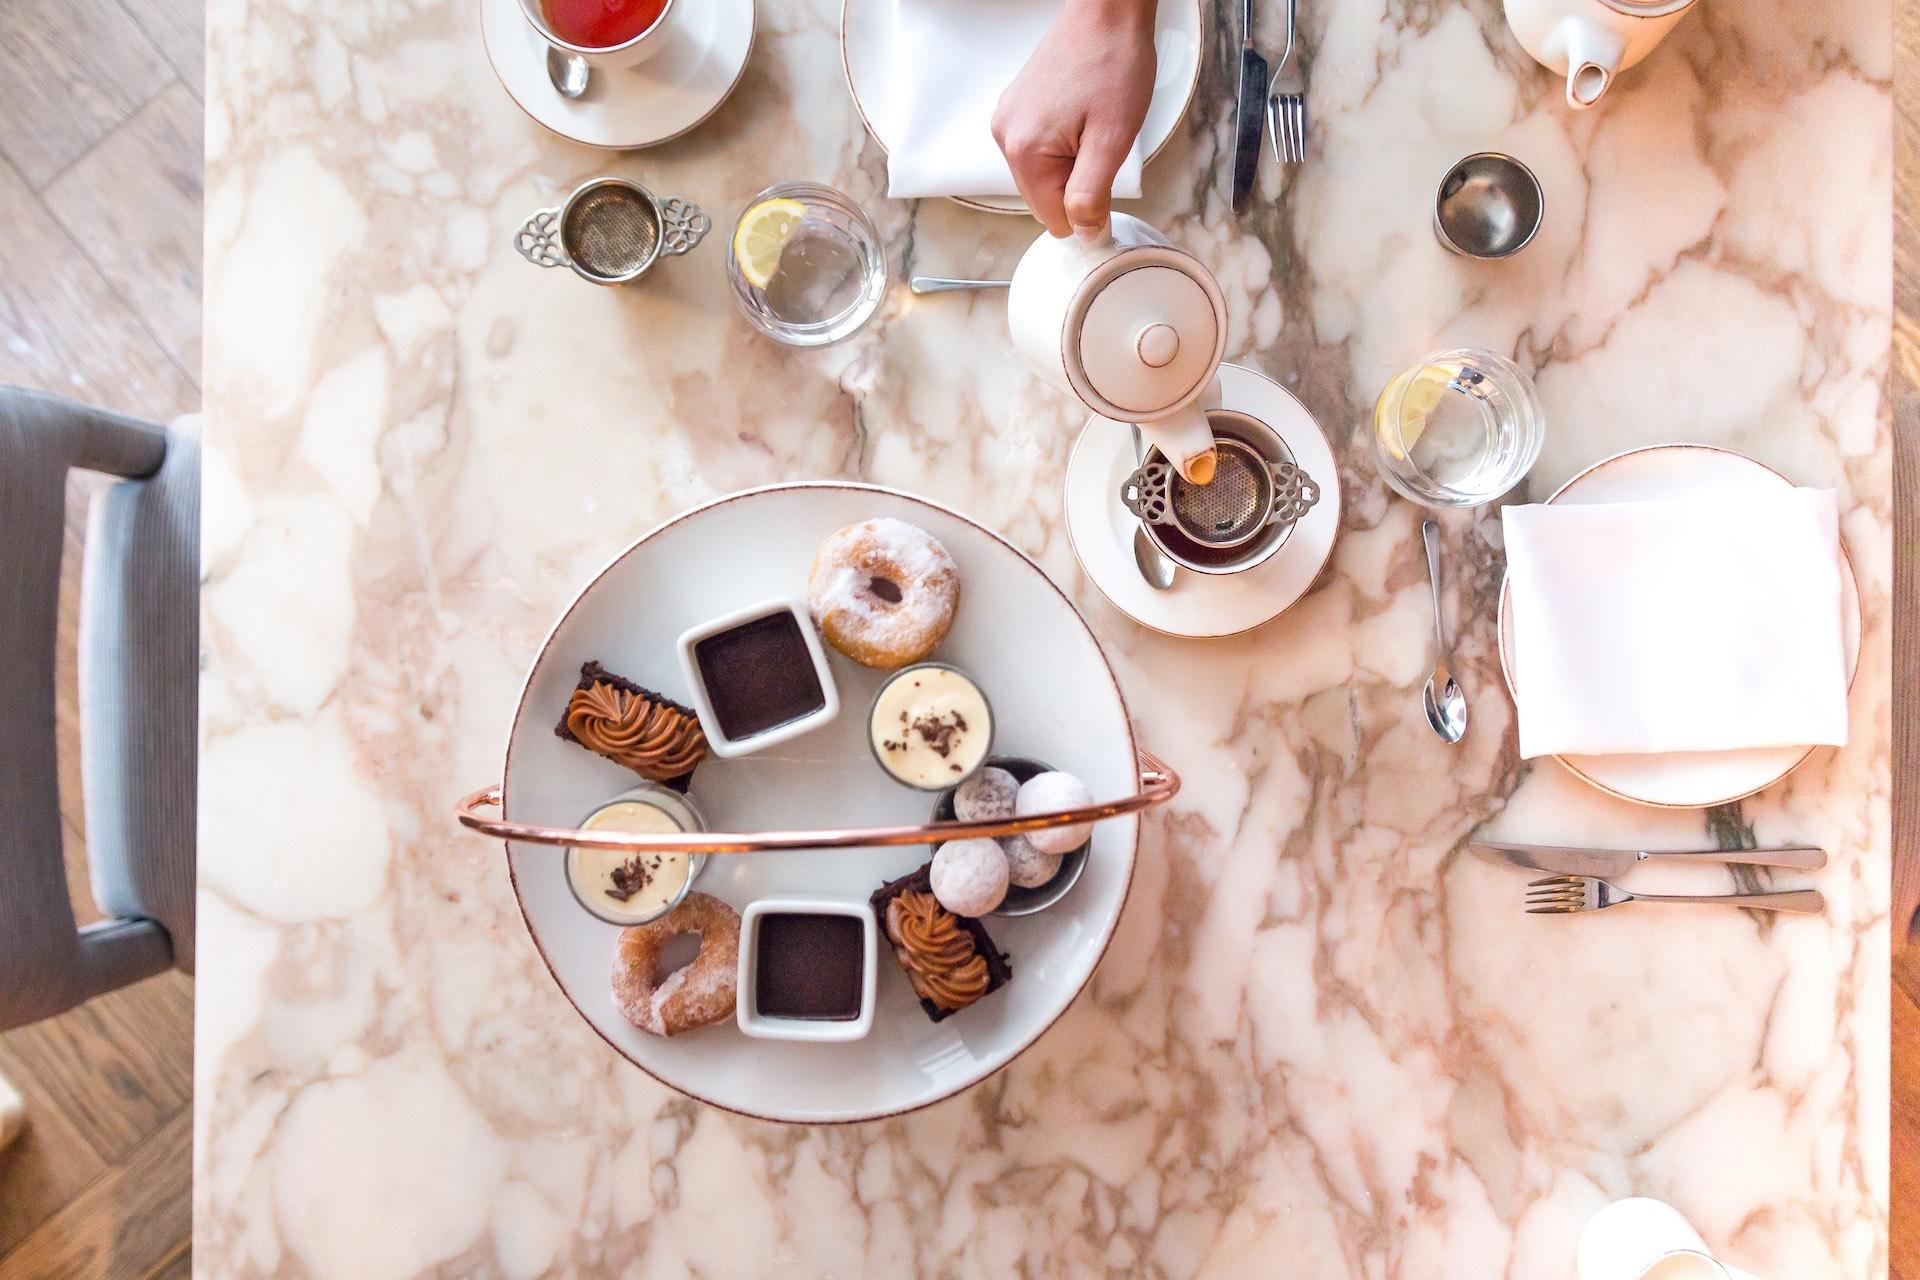 Signature Charbonnel et Walker Afternoon Tea